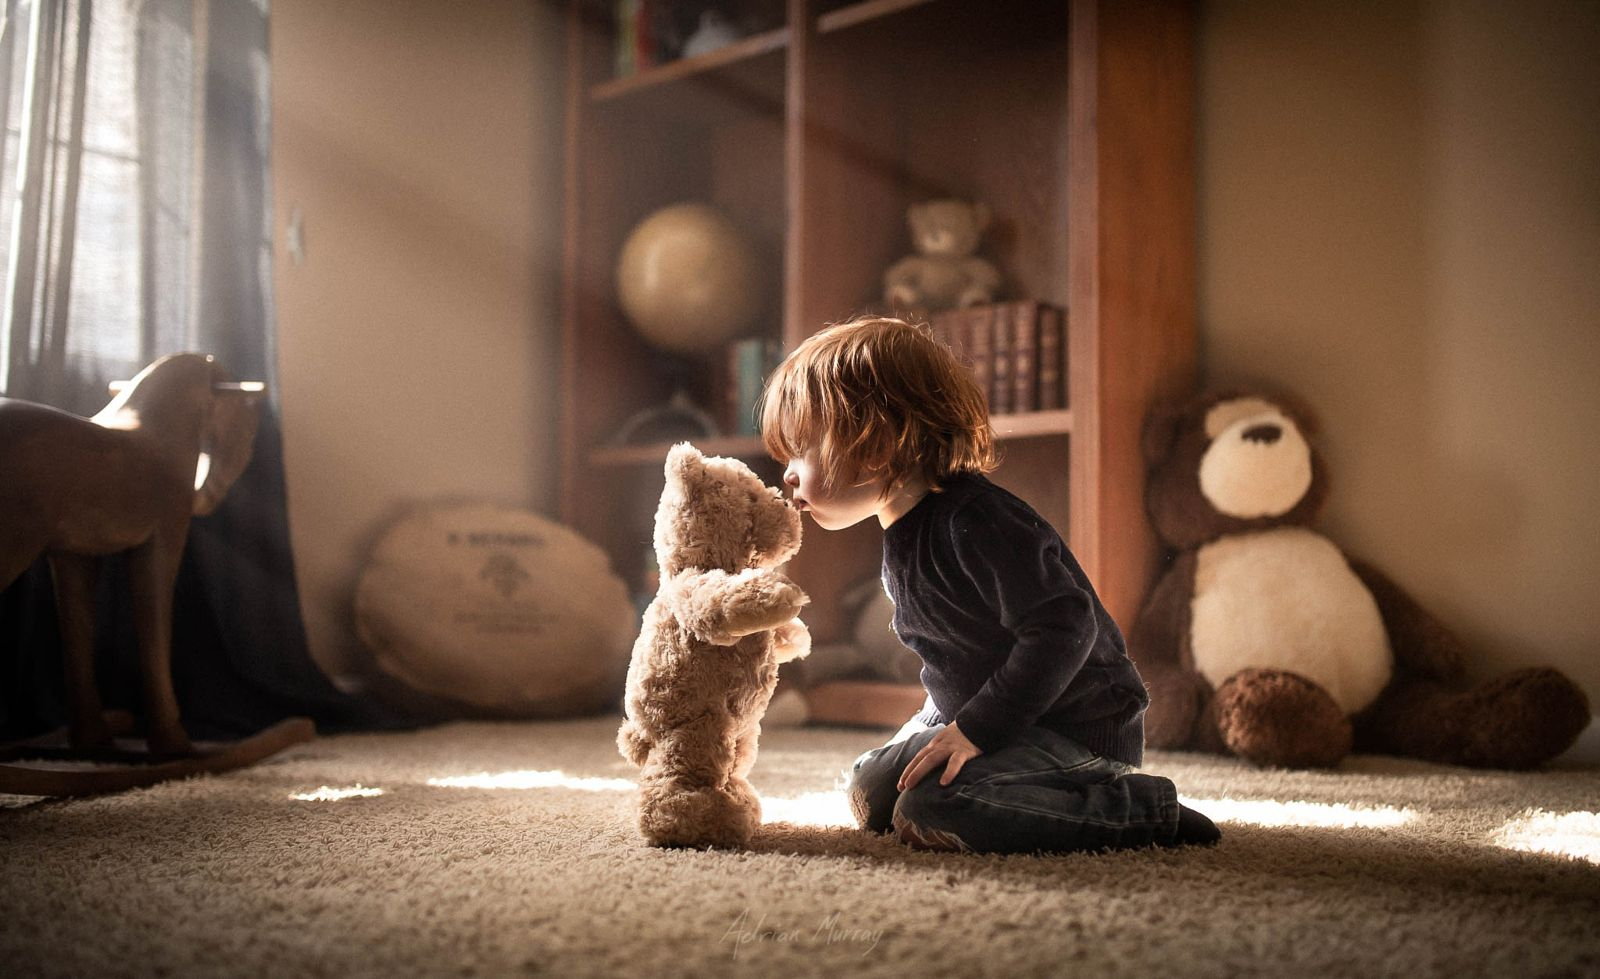 Top 20 Family Photos on 500px So Far This Year #photography